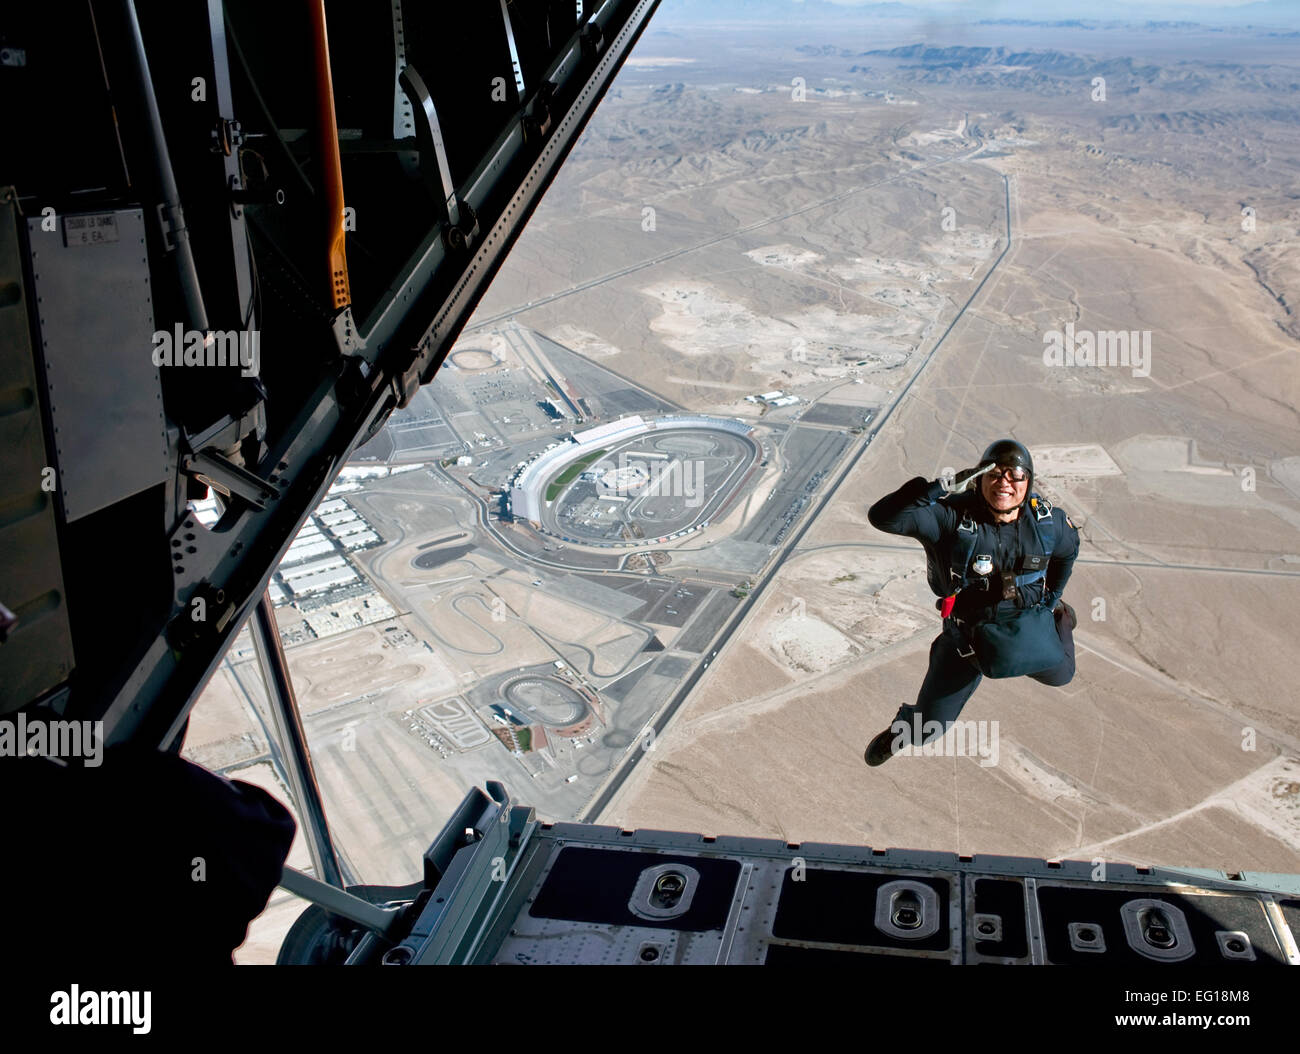 U.S. Air Force Academy Cadet 1st Class Alan Wong with the U.S. Air Force Academy parachute team, Wings of Blue, - Stock Image